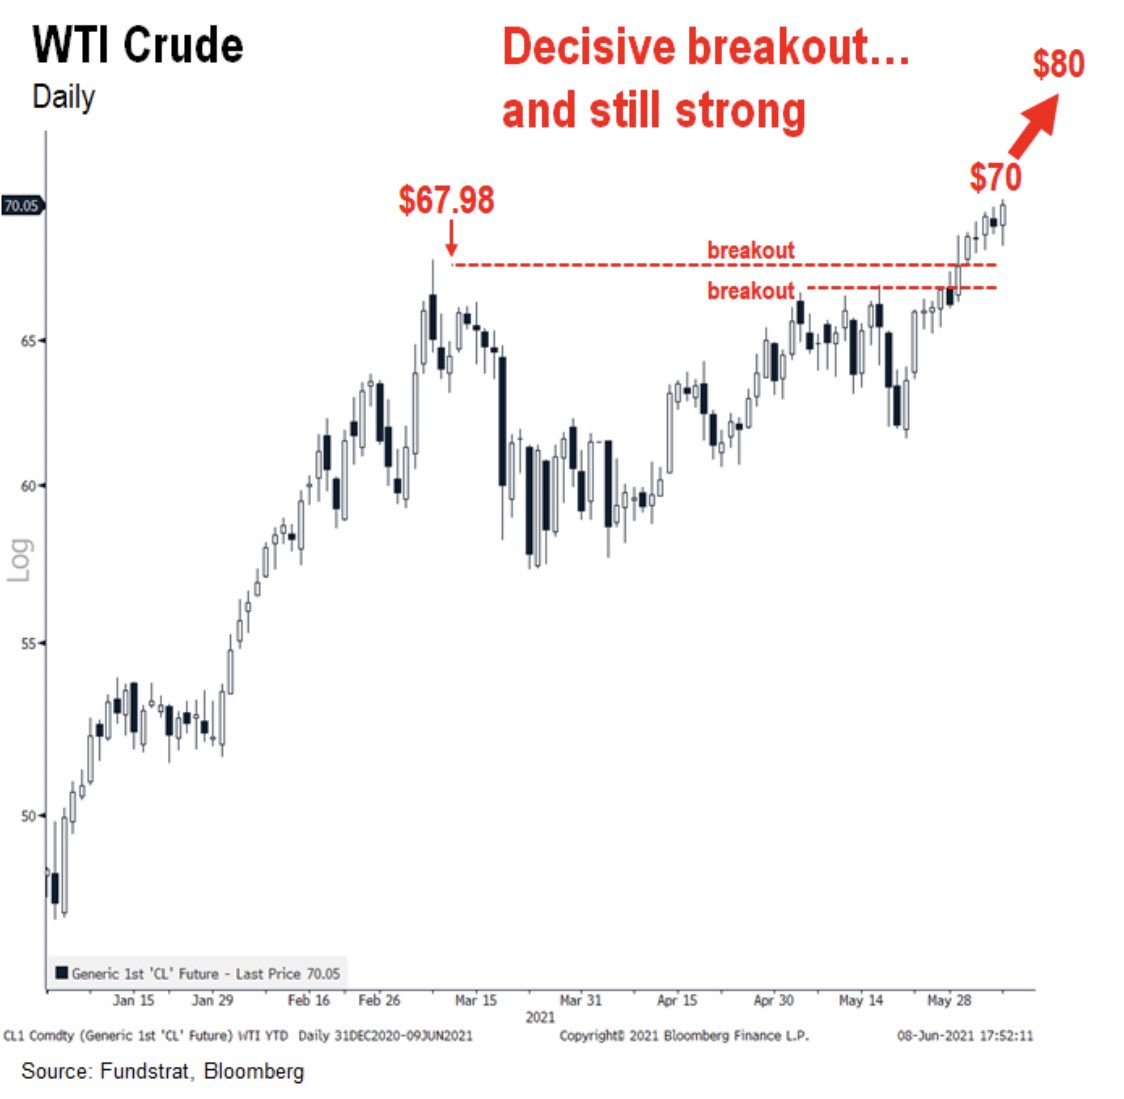 Oil pointing towards $80 after breakout says Fundstrat